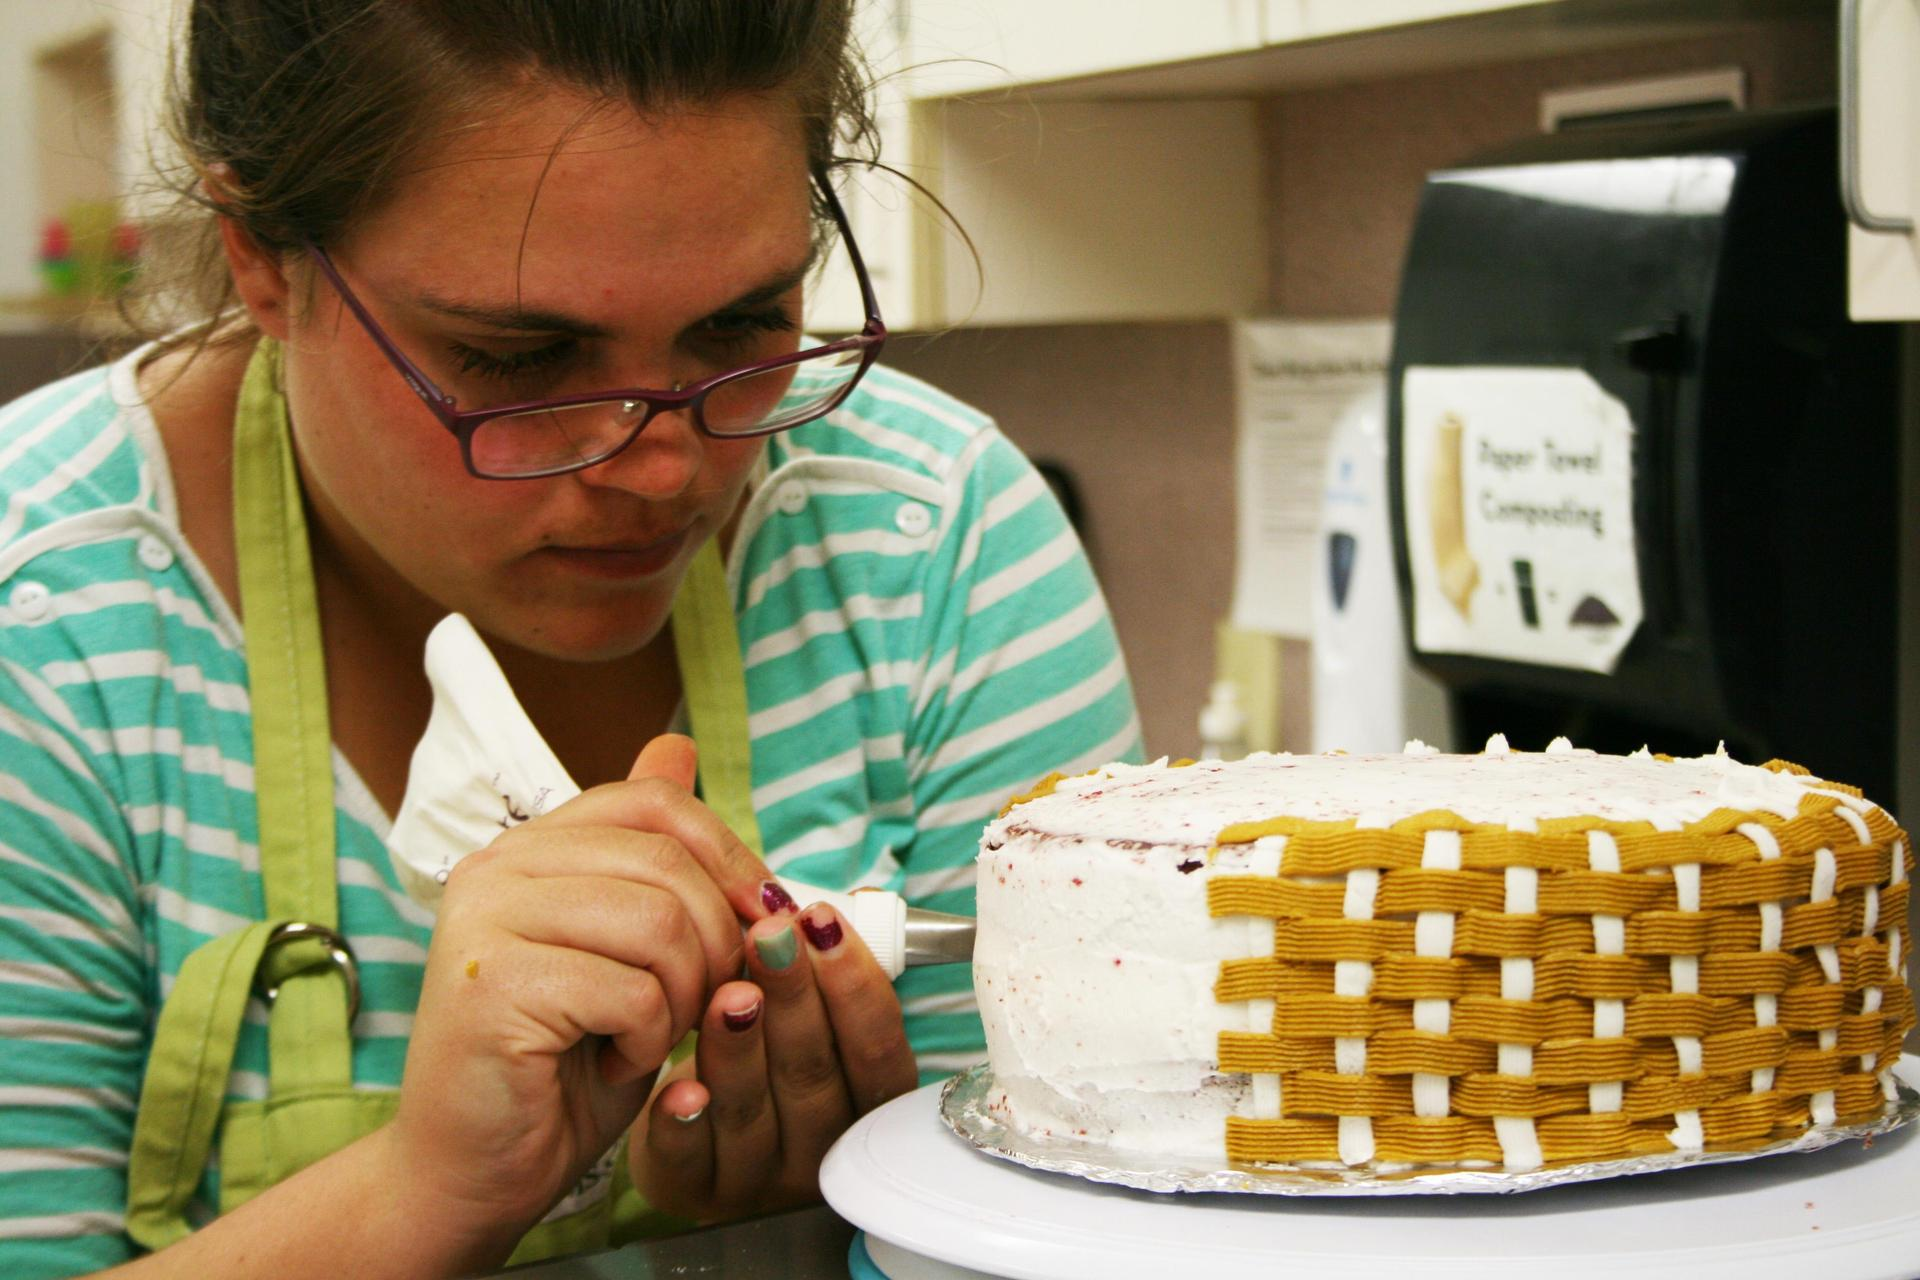 An adult student using a piping bag to decorate a cake with a basketweave pattern.